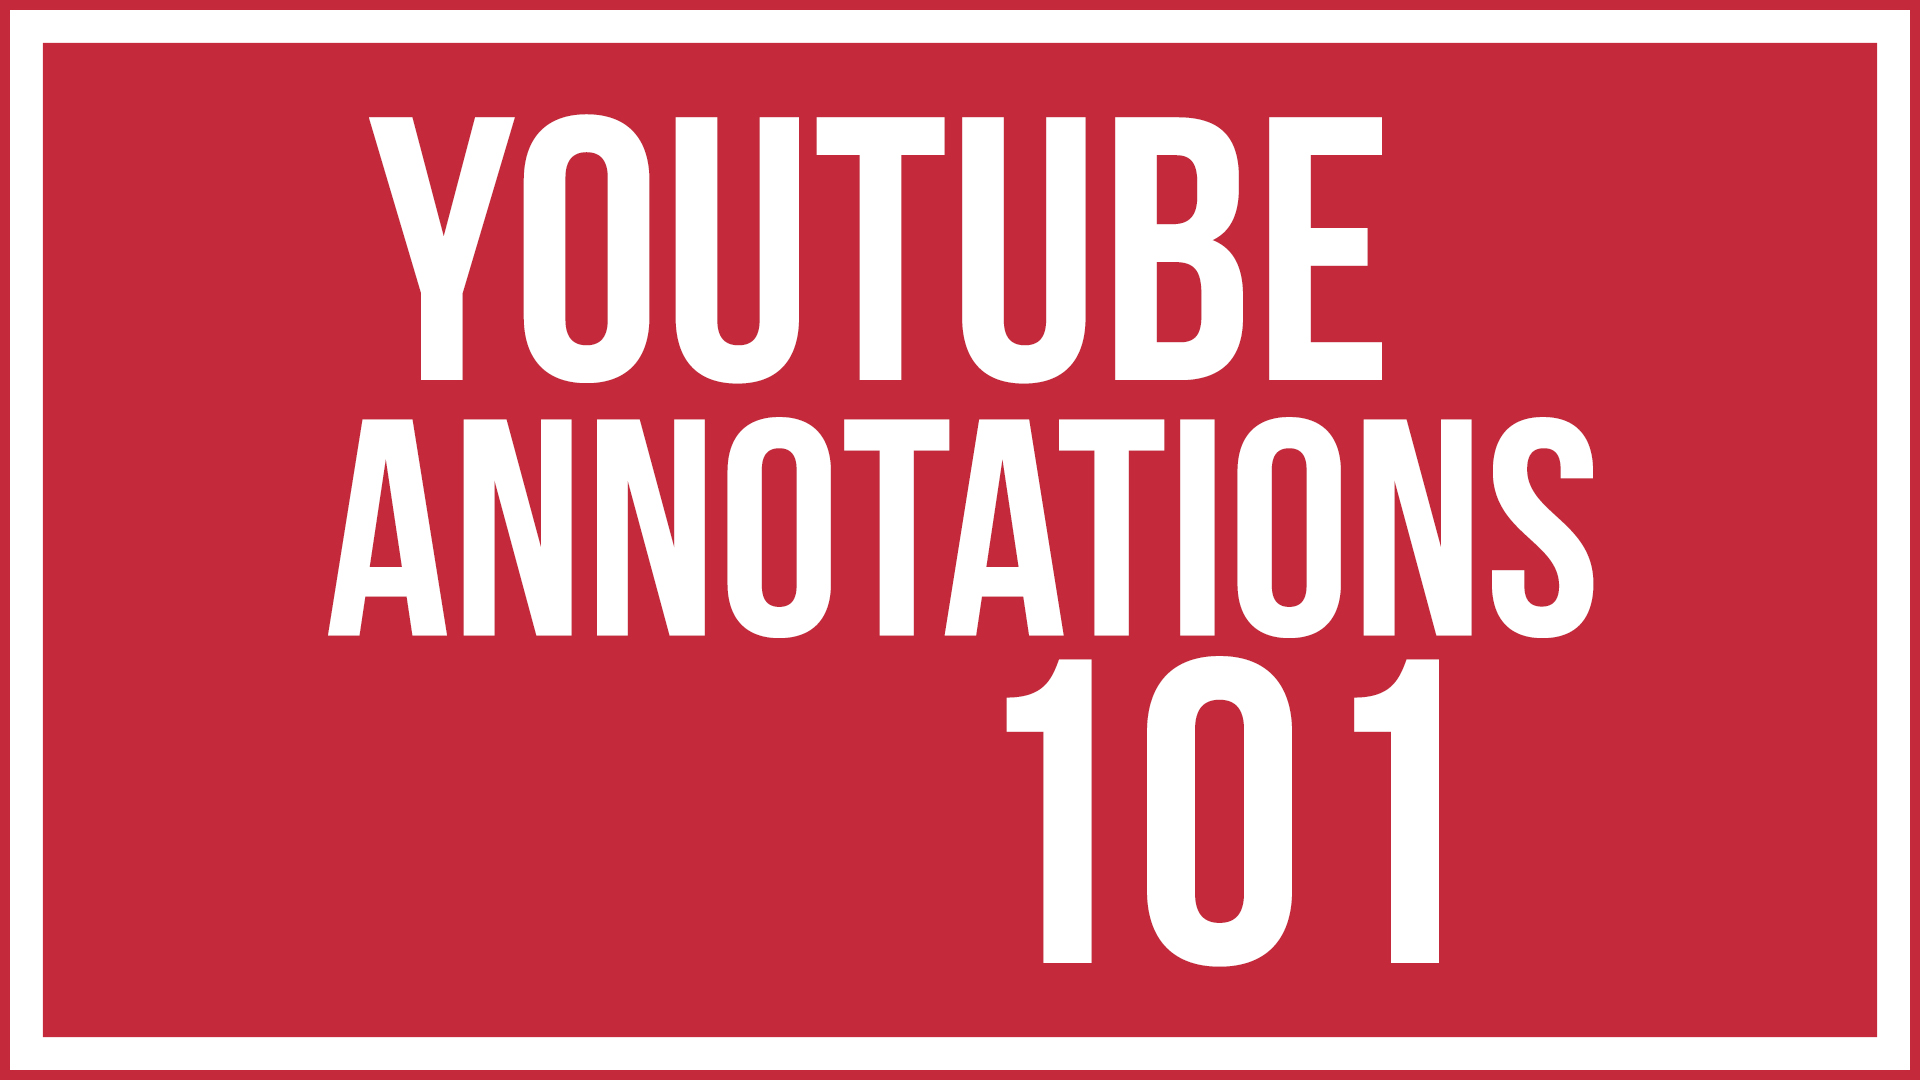 In This Article We Are Going To Discuss Youtube Annotations First, We Need  To Understand What An Annotation Is If You Are Watching A Video And You  See A